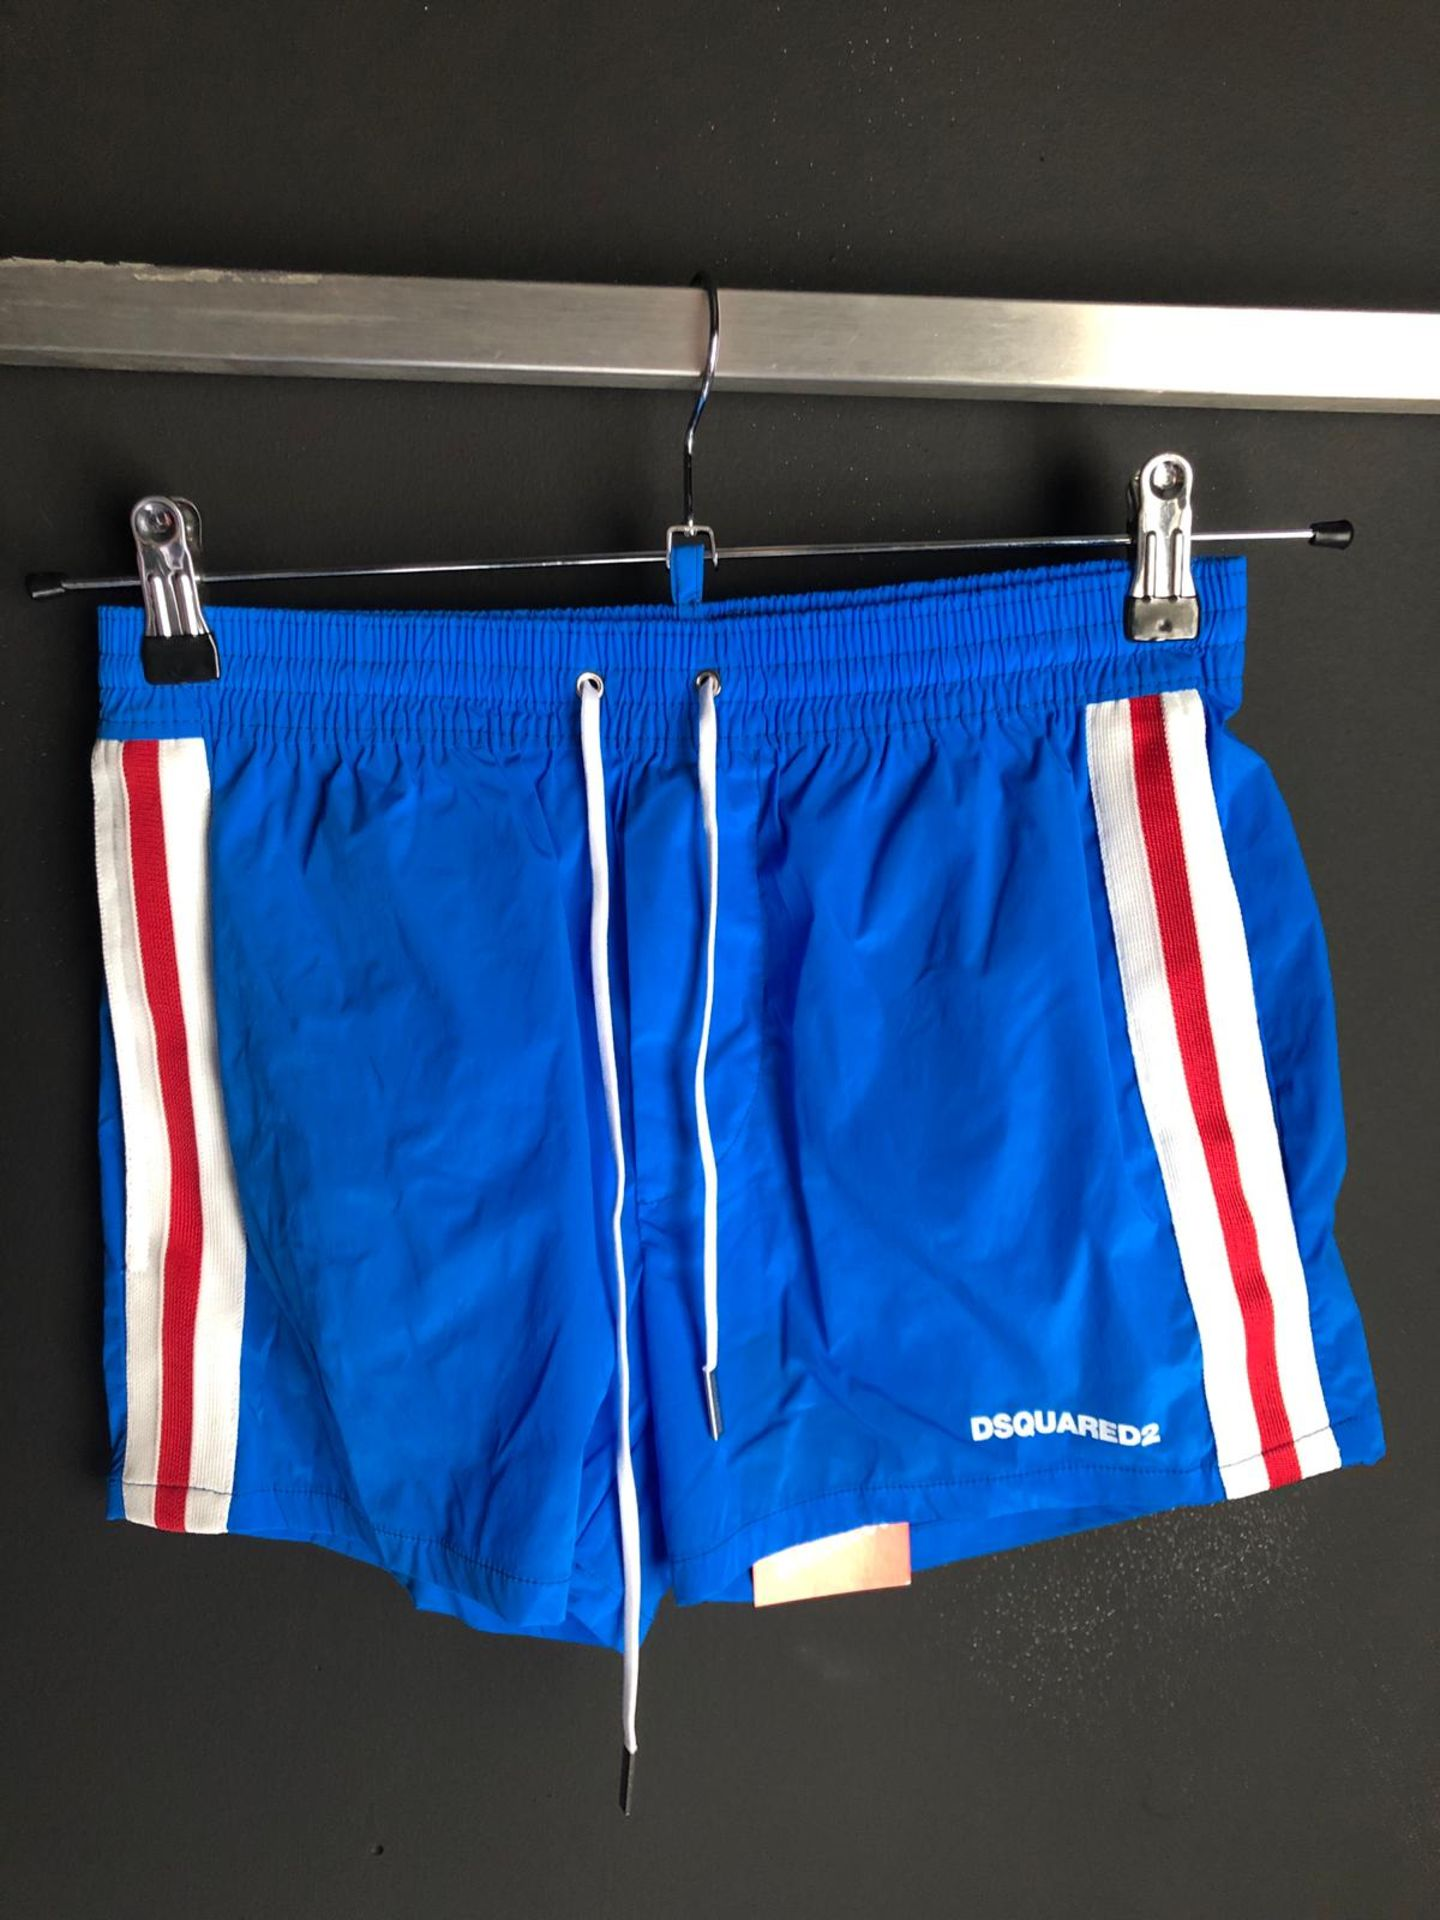 NEW DSQUARED2 SHORTS BLUE SMALL 29/30 WAIST